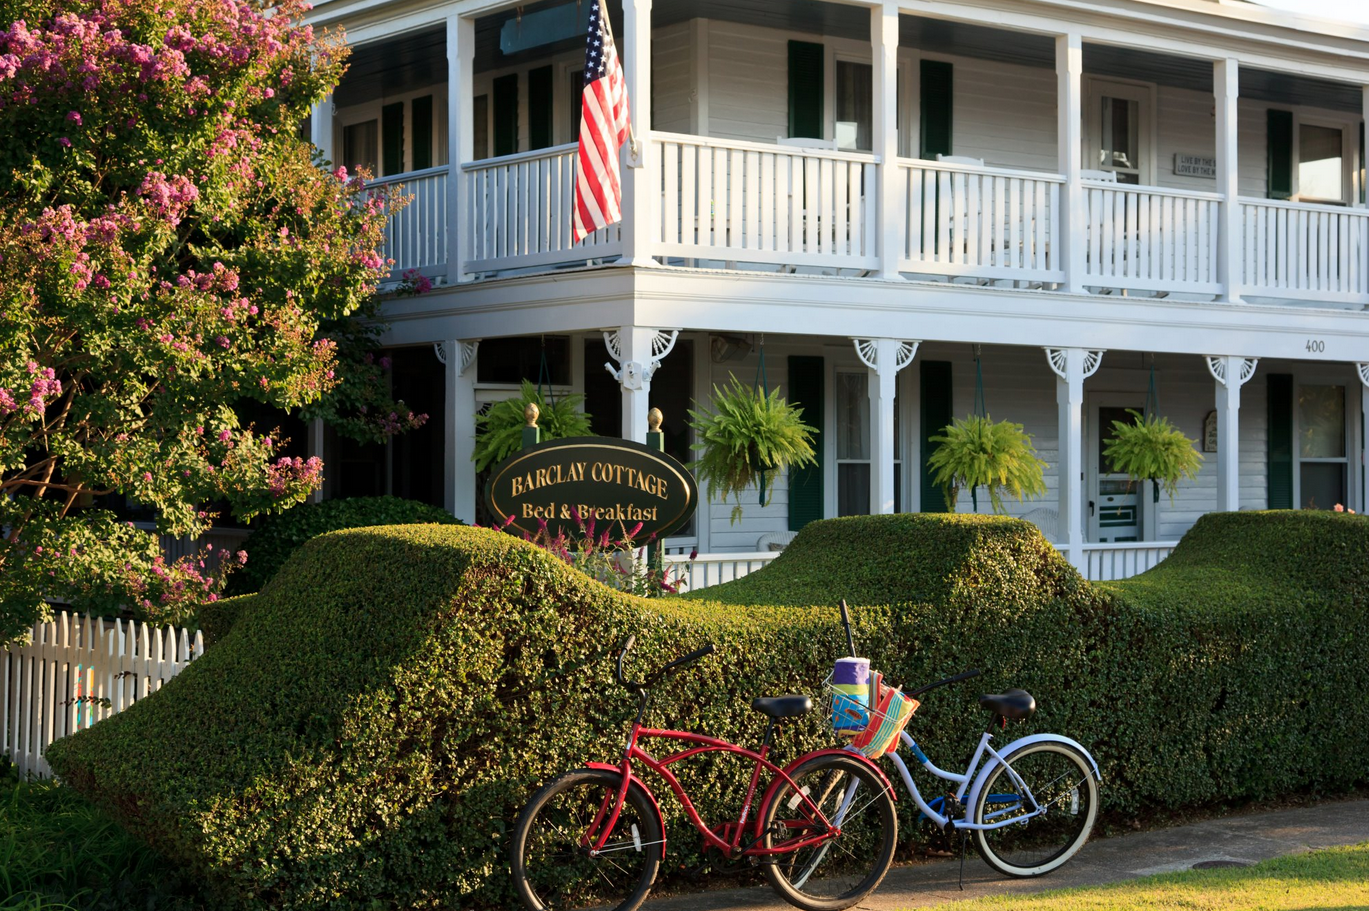 Barclay Cottage Bed & Breakfast | Virginia Beach Vacation Guide